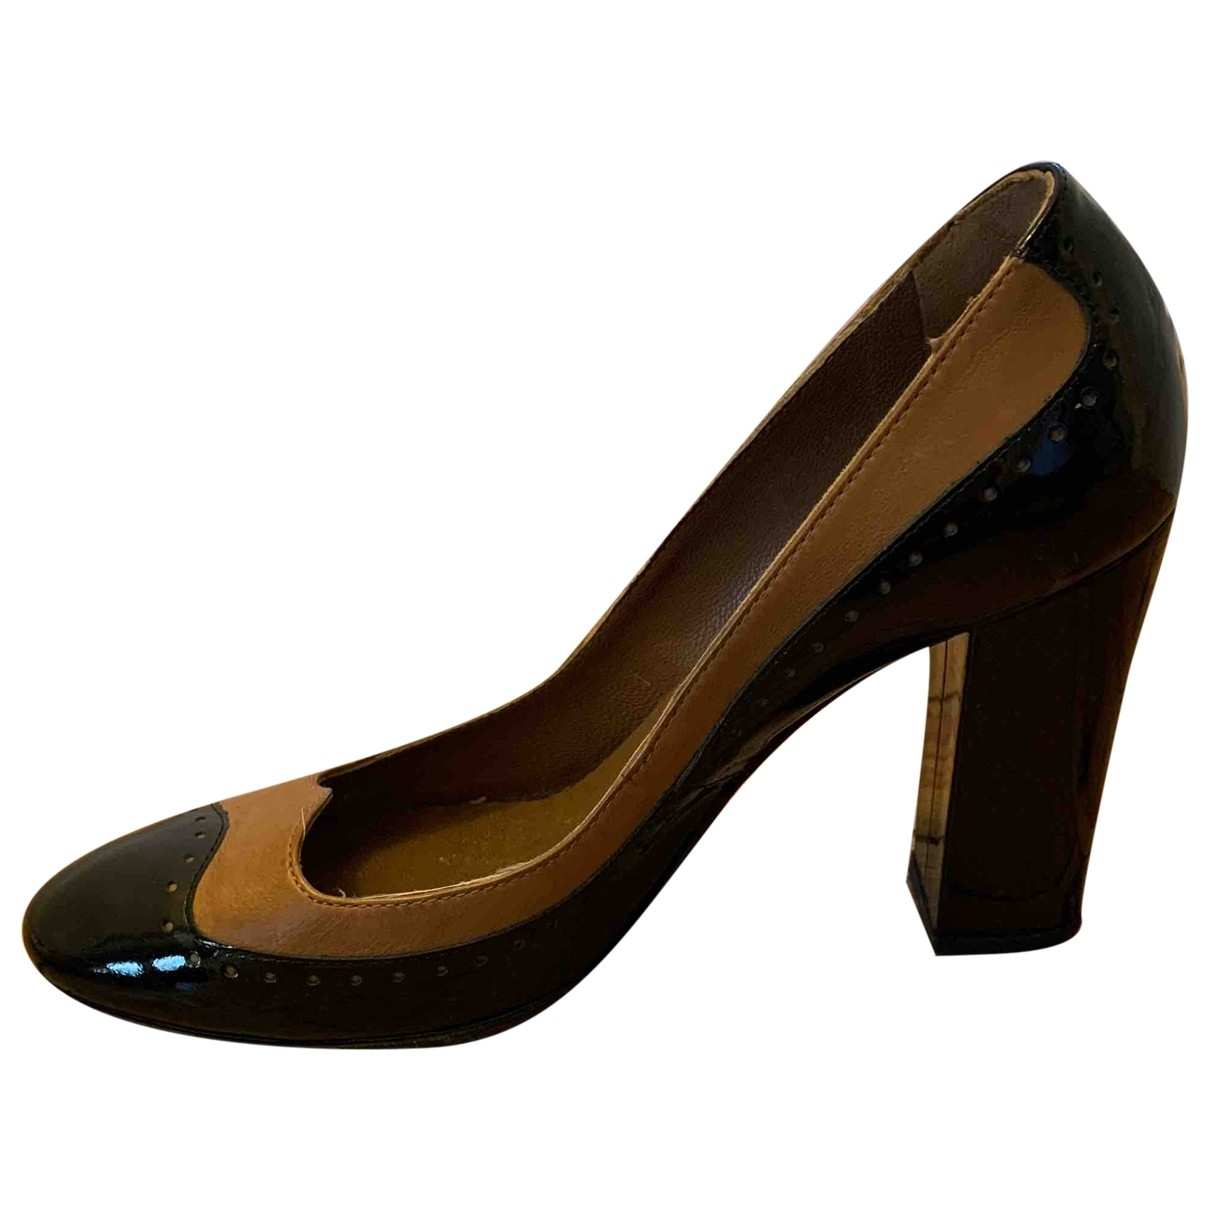 Hobbs \N Black Patent leather Heels for Women 37 EU